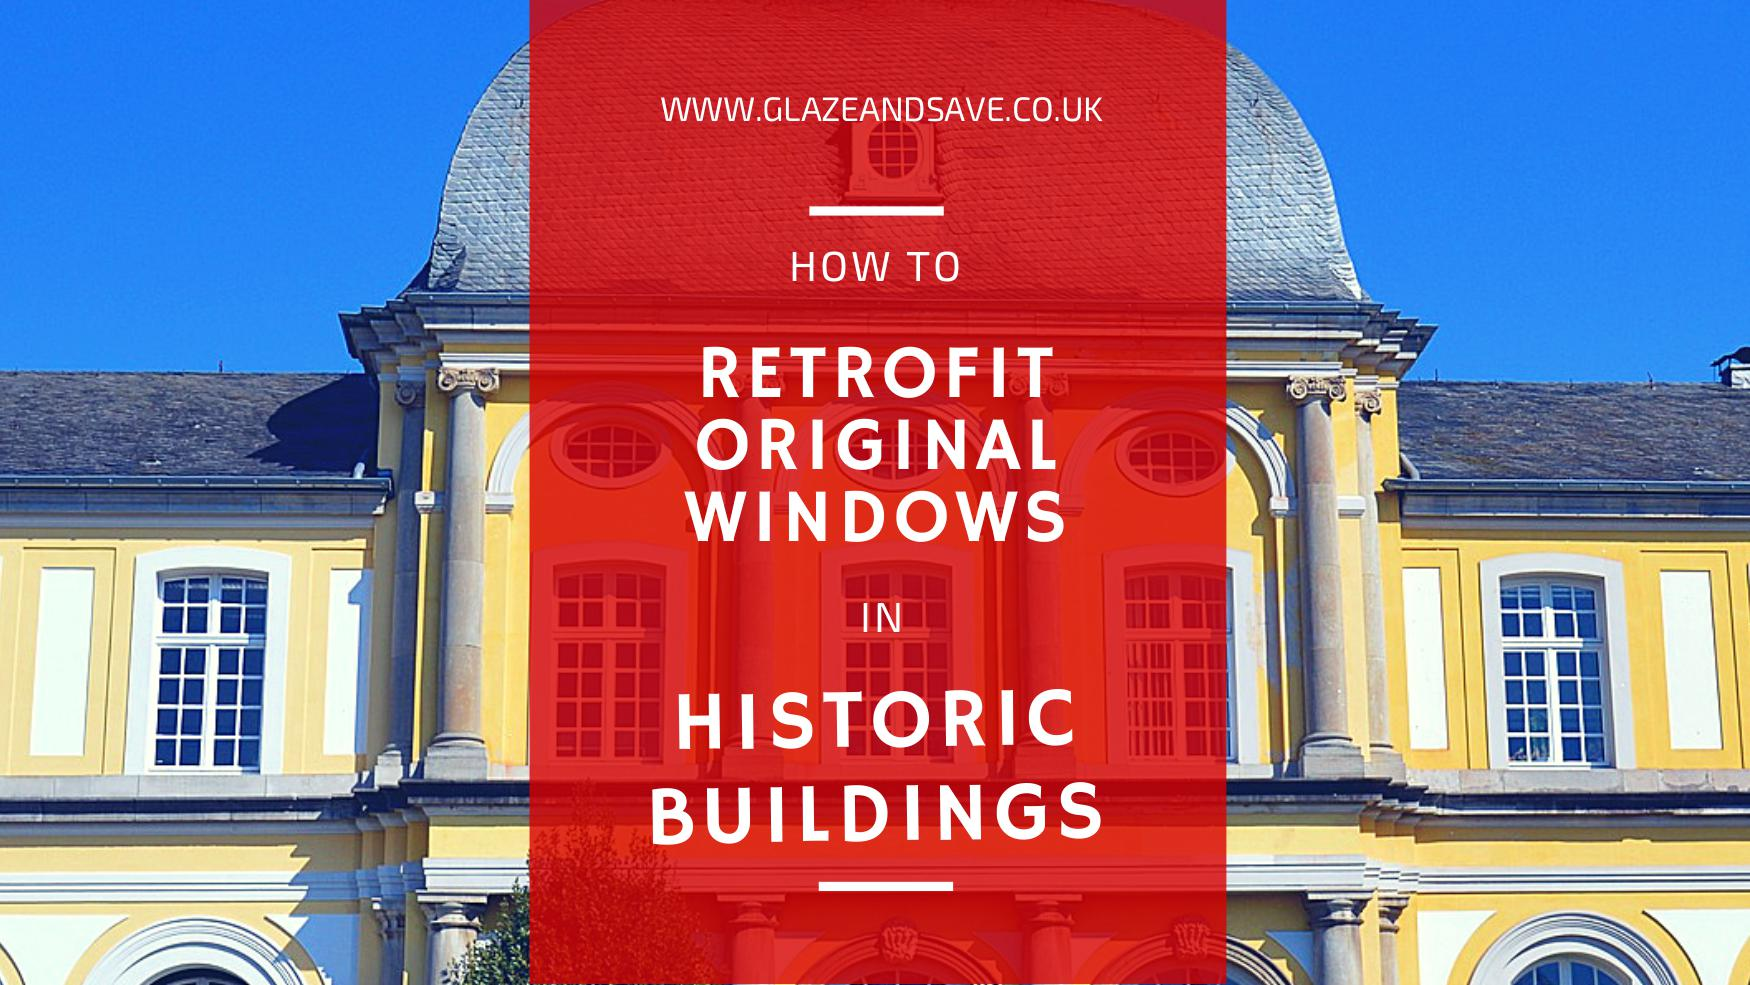 How to retrofit original windows in historic buildings by Glaze & Save bespoke magnetic secondary glazing and draughtproofing in Scotland www.glazeandsave.co.uk